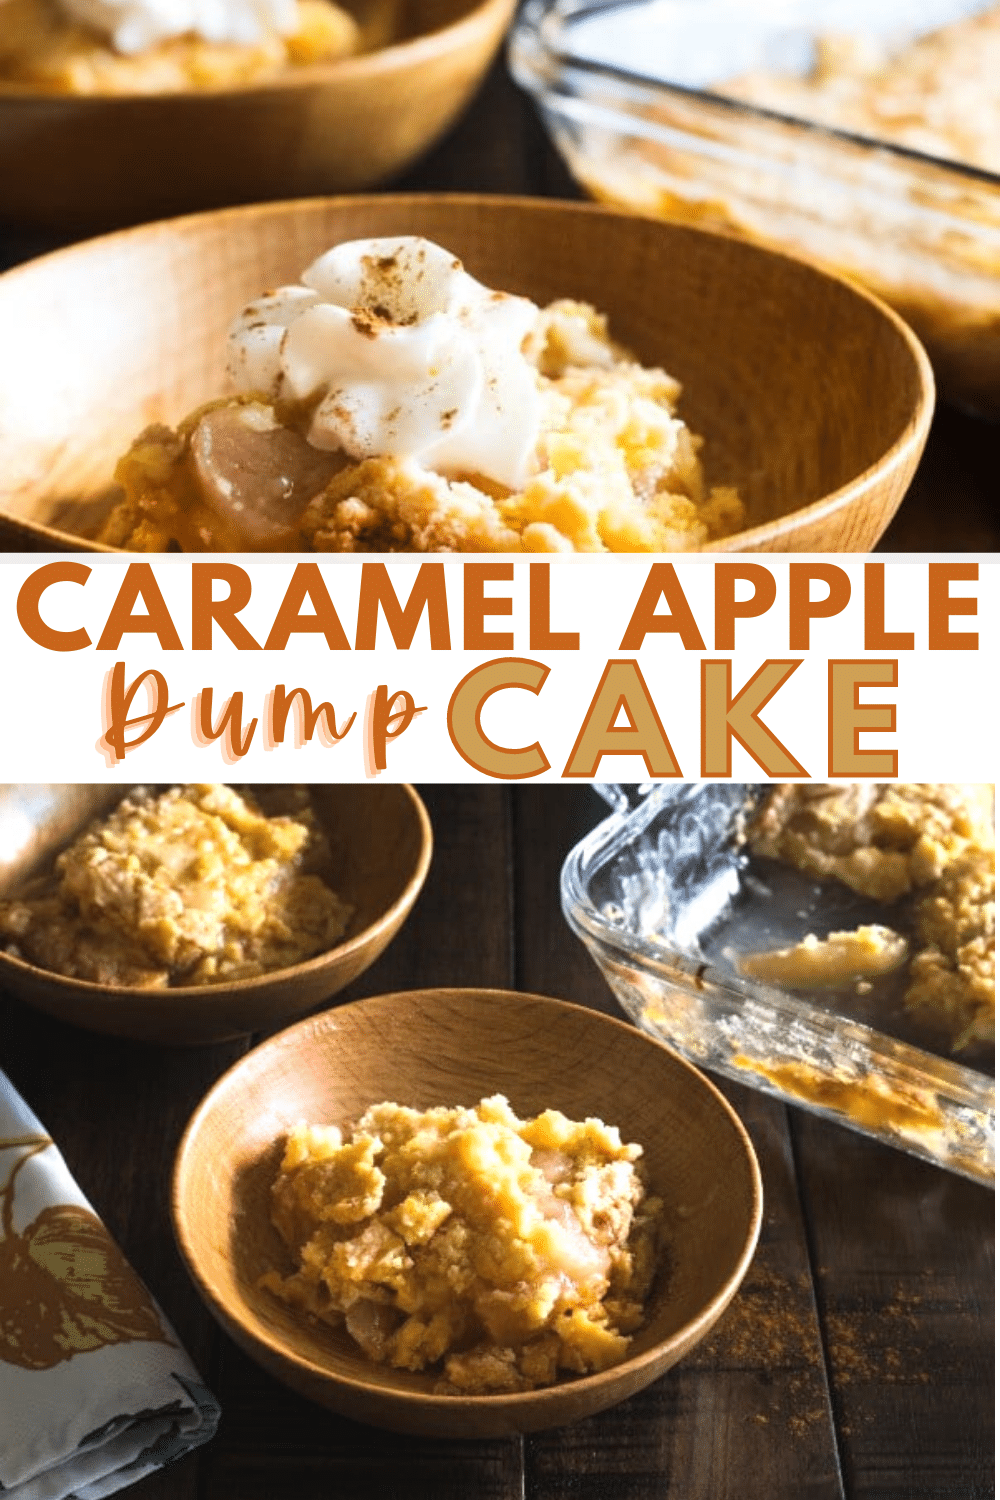 This caramel apple dump cake is a family favorite because it tastes amazing and only takes a few minutes to put together. Just 3 ingredients! #dumpcake #easydessert #caramelapple via @wondermomwannab